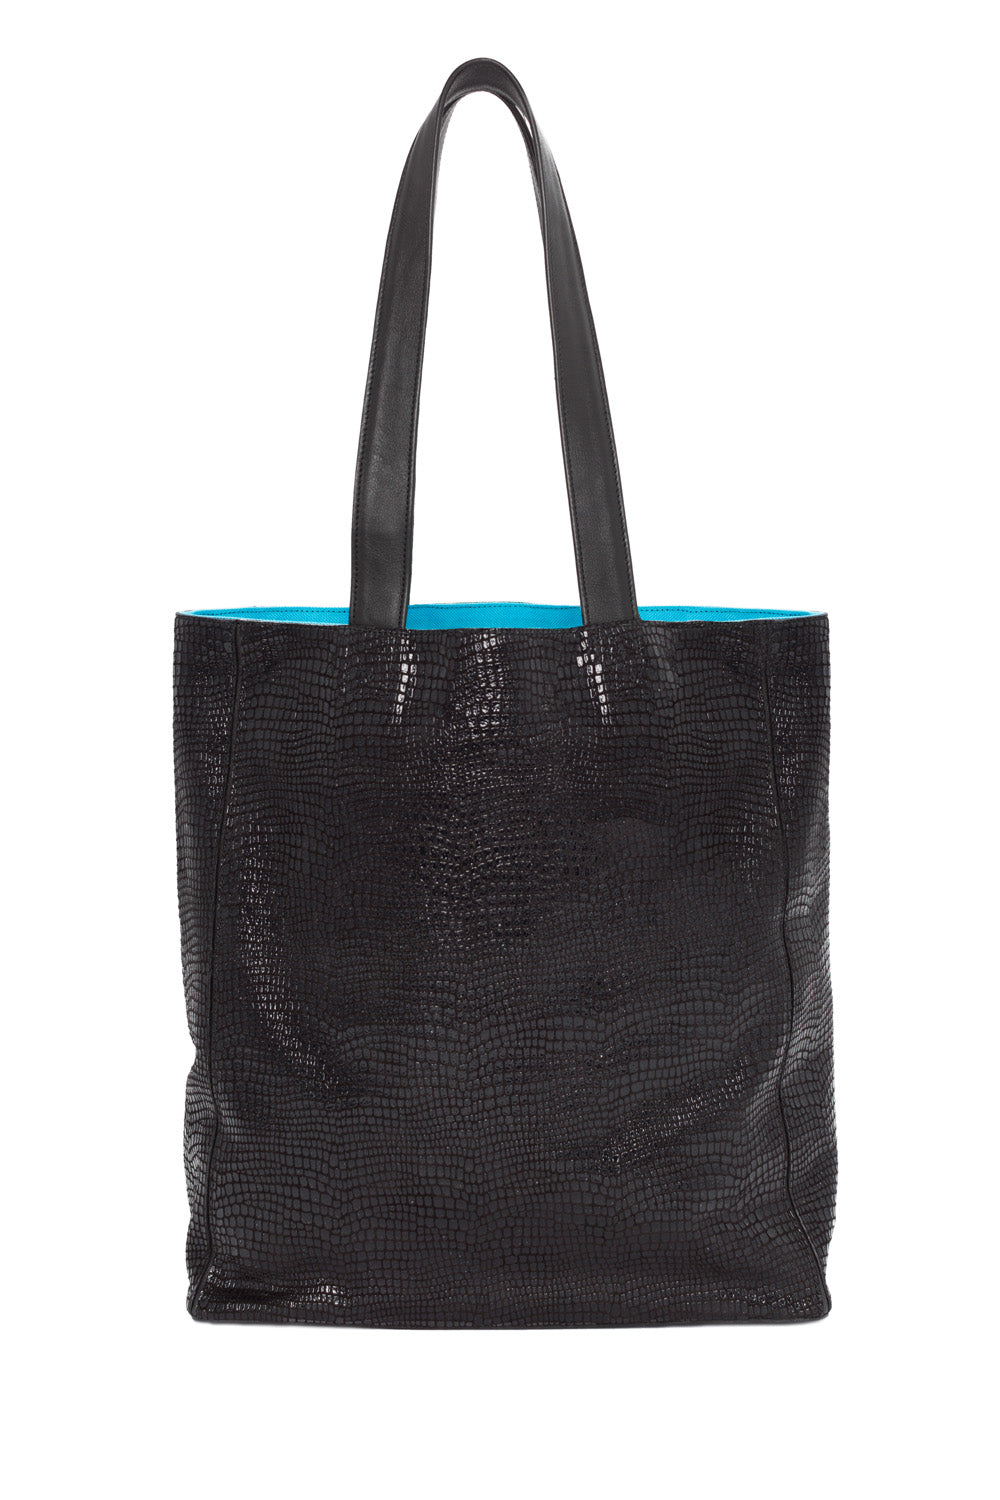 High-Gloss, Lizard-Effect Leather 'Stuart' Carryall Tote | Mel Boteri | Back View